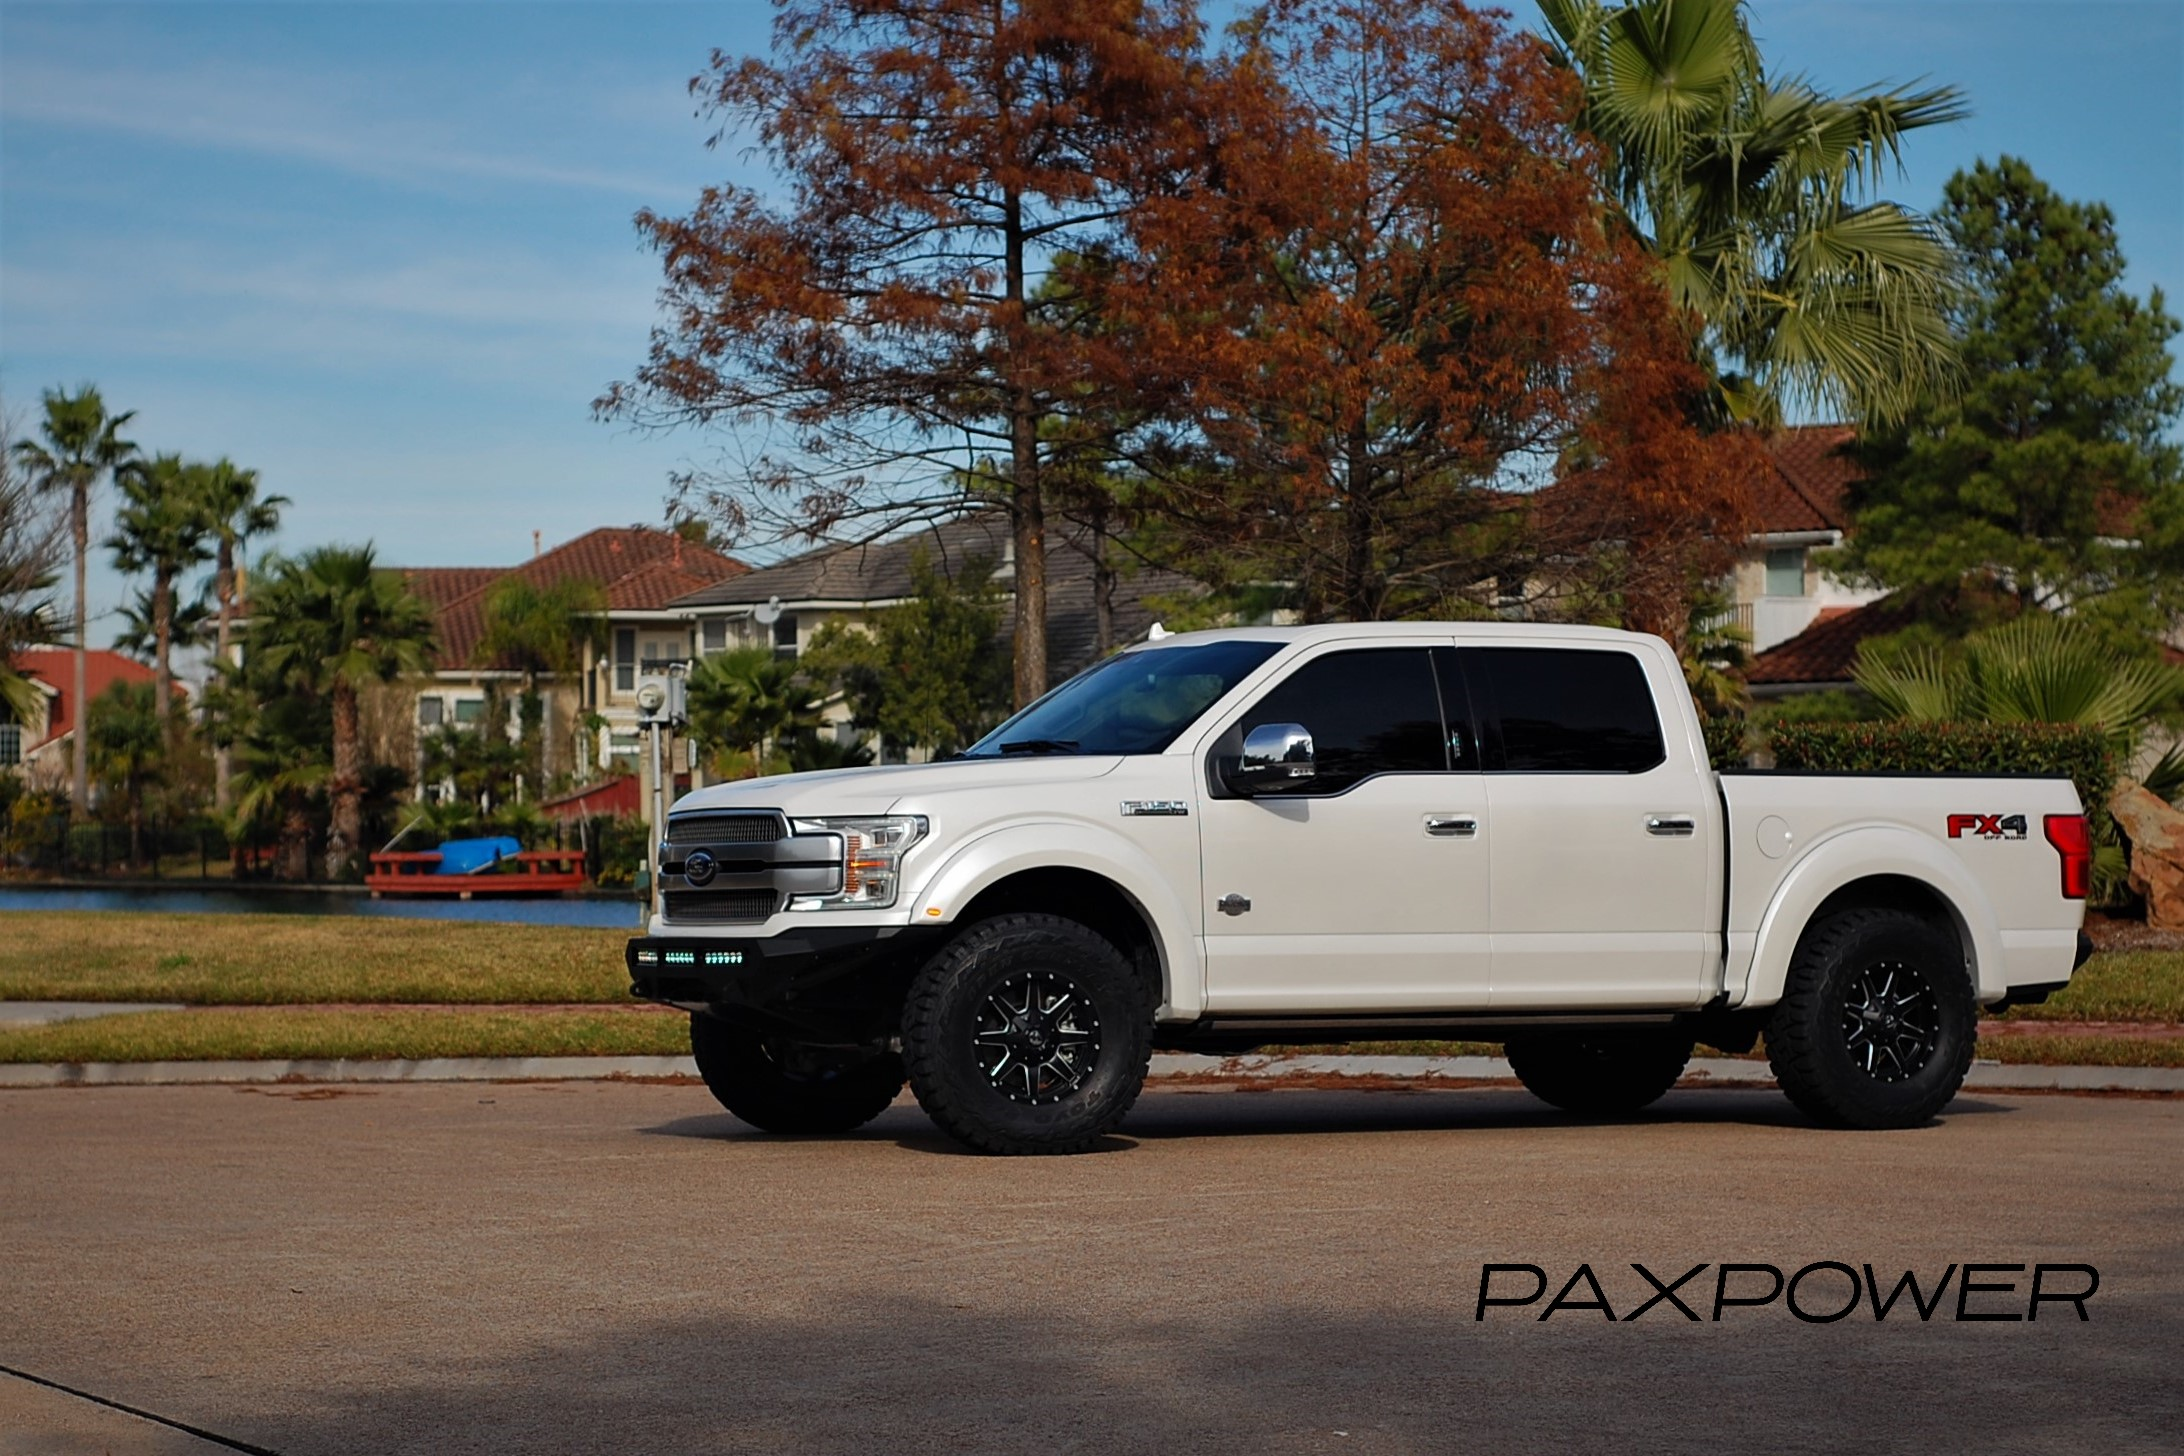 PaxPower King Ranch F150 Build with Raptor suspension and